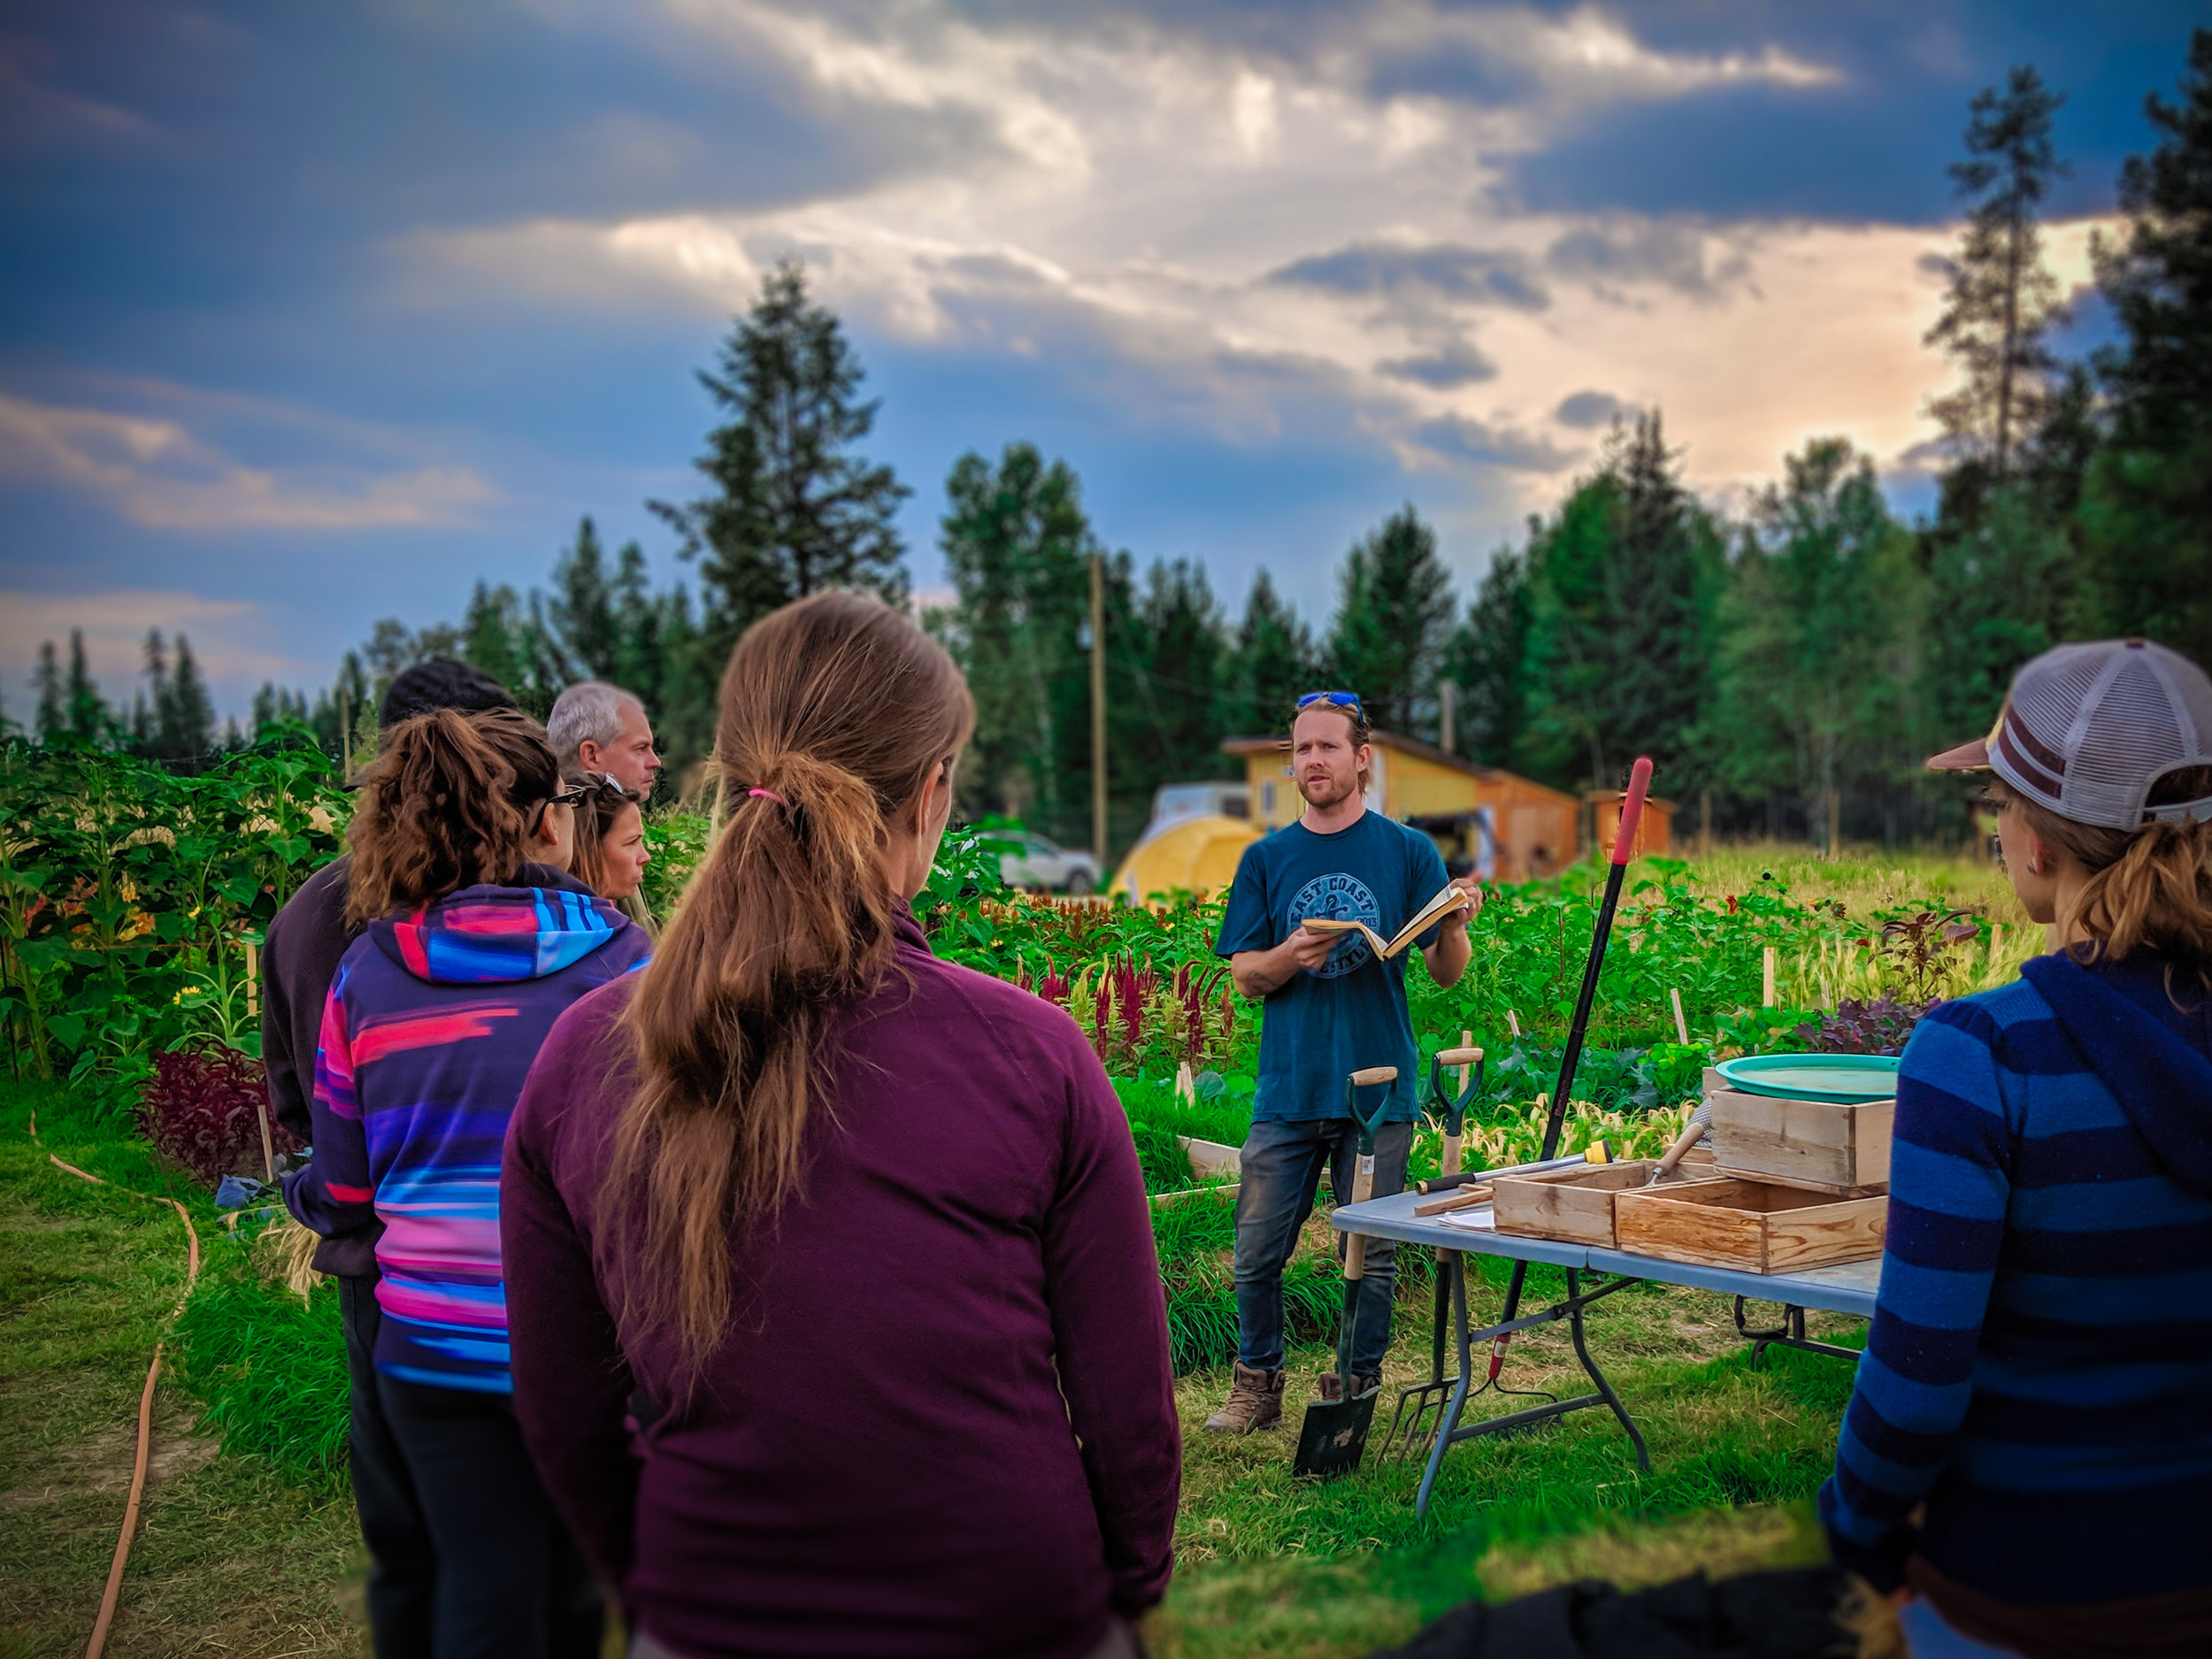 During the tour - we'll discuss the 8 principles of Grow Biointensive mini-farming, host a Q & A session, and provide a free skill building workshop with demonstration of GB techniques!